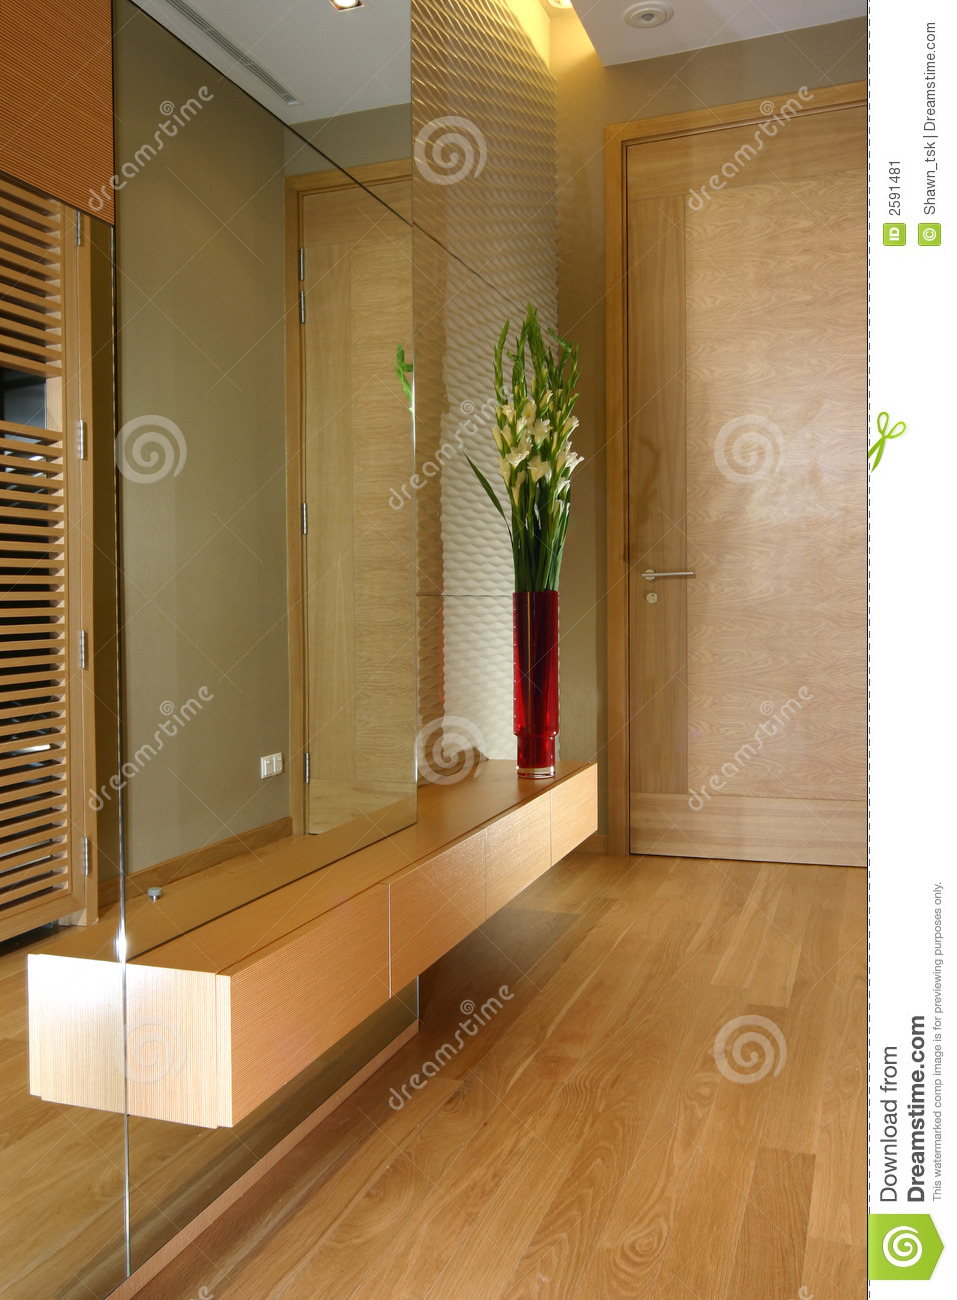 Interior design foyer stock image image of vanity wall for Foyer designs for apartments india